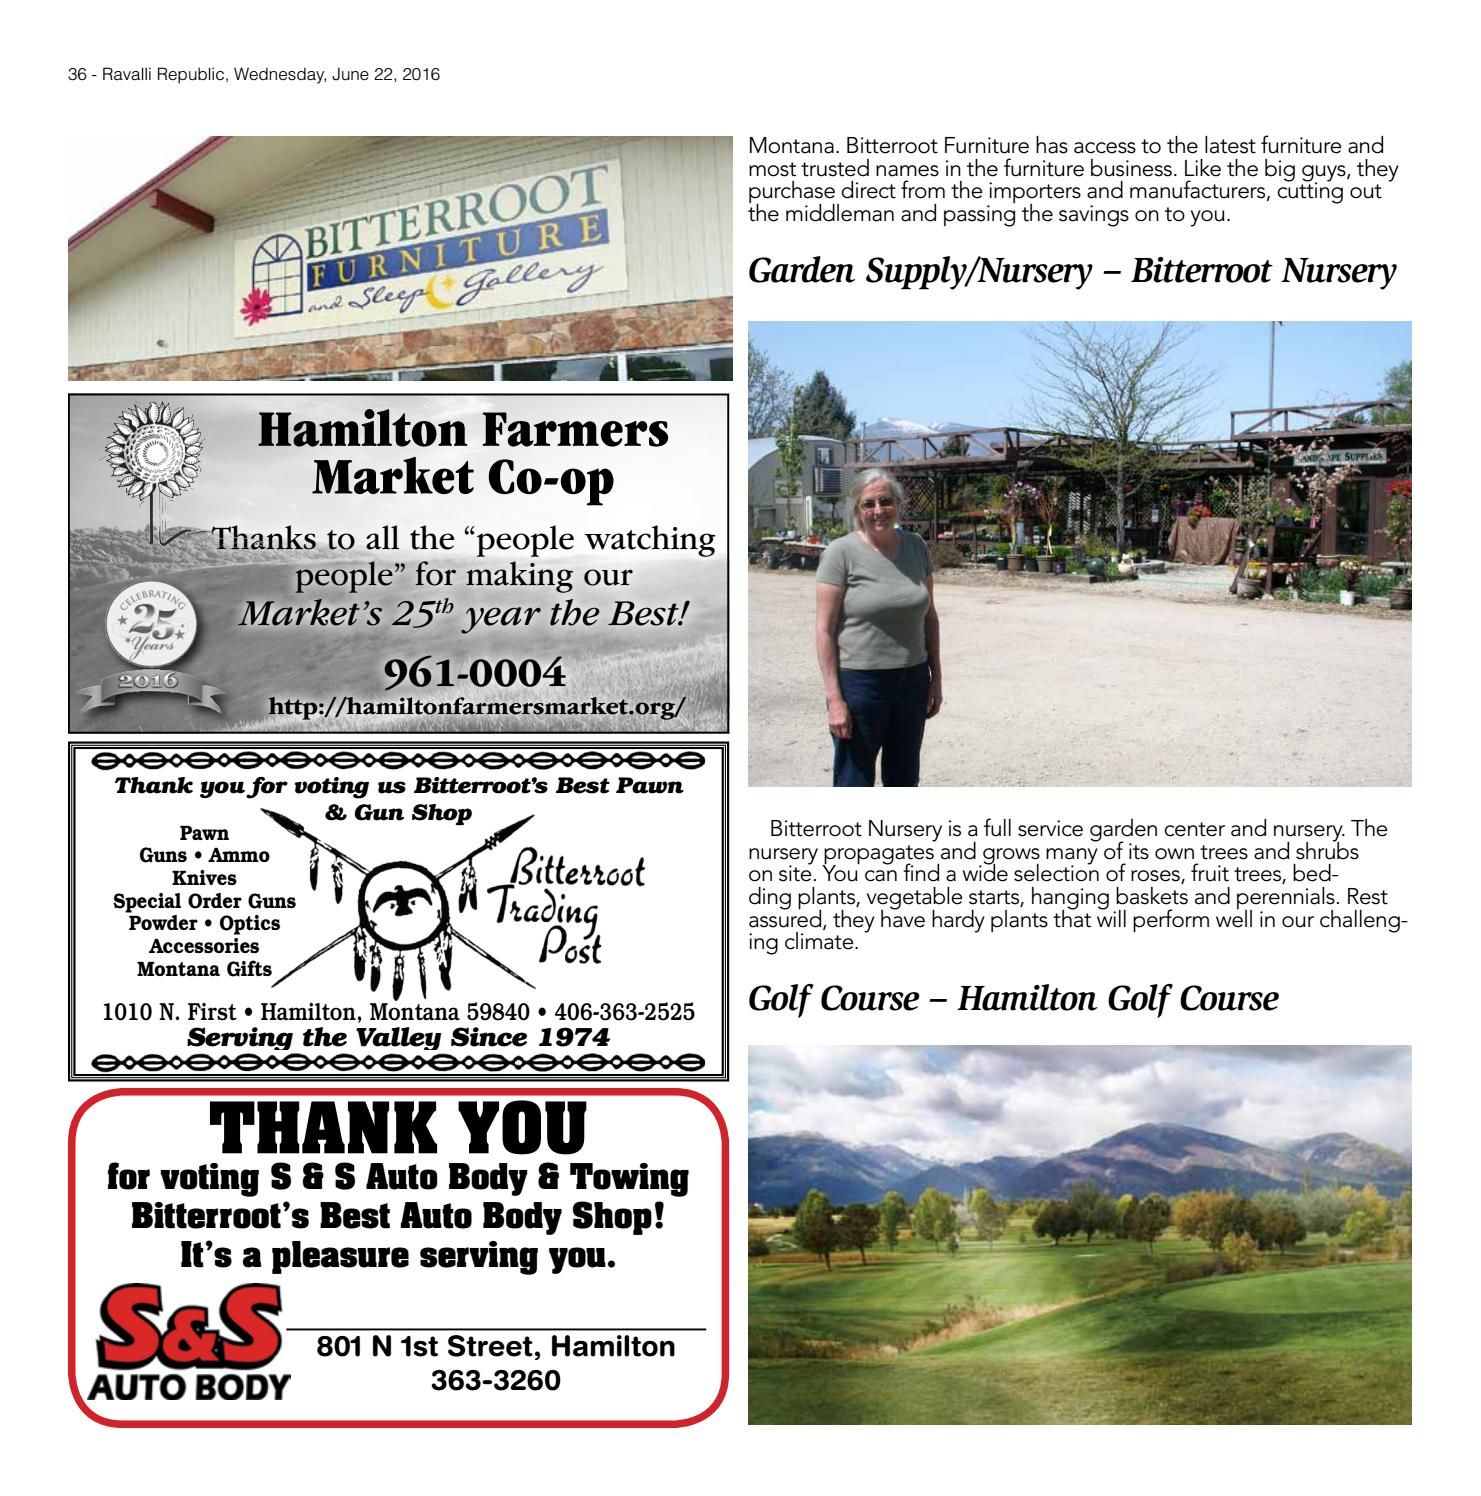 Bitterrootu0027s Best 2016 By Ravalli Republic   Issuu